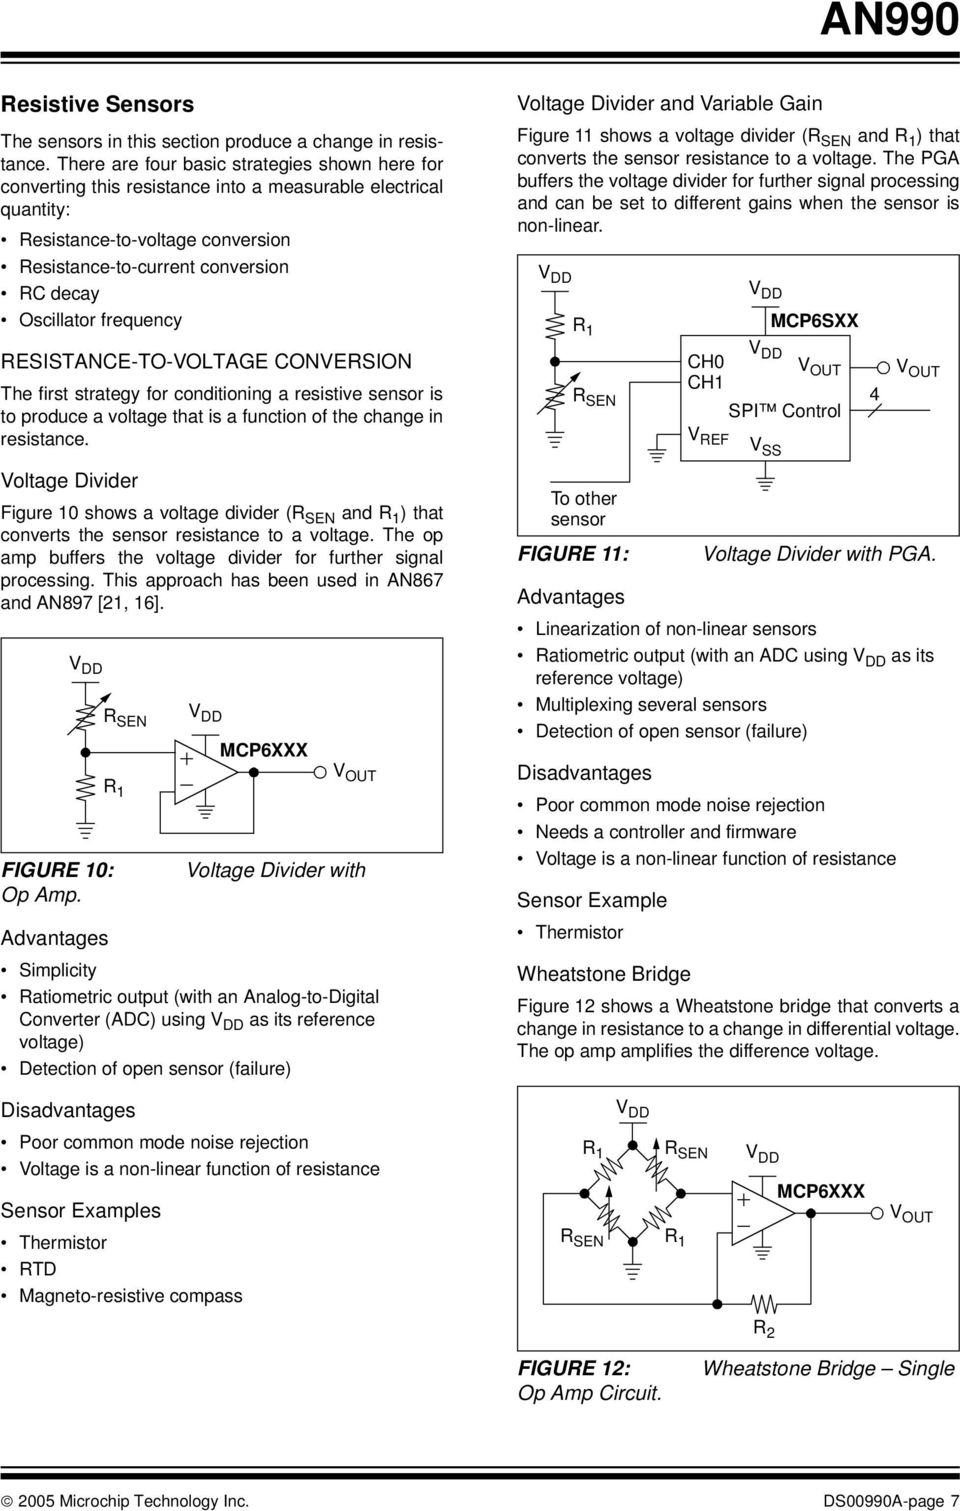 An990 Analog Sensor Conditioning Circuits An Overview Introduction Circuit Diagram Pwm To Amplified And Buffered Linear Signal Converter Frequency Resistance Voltage Conversion The First Strategy For A Resistive Is